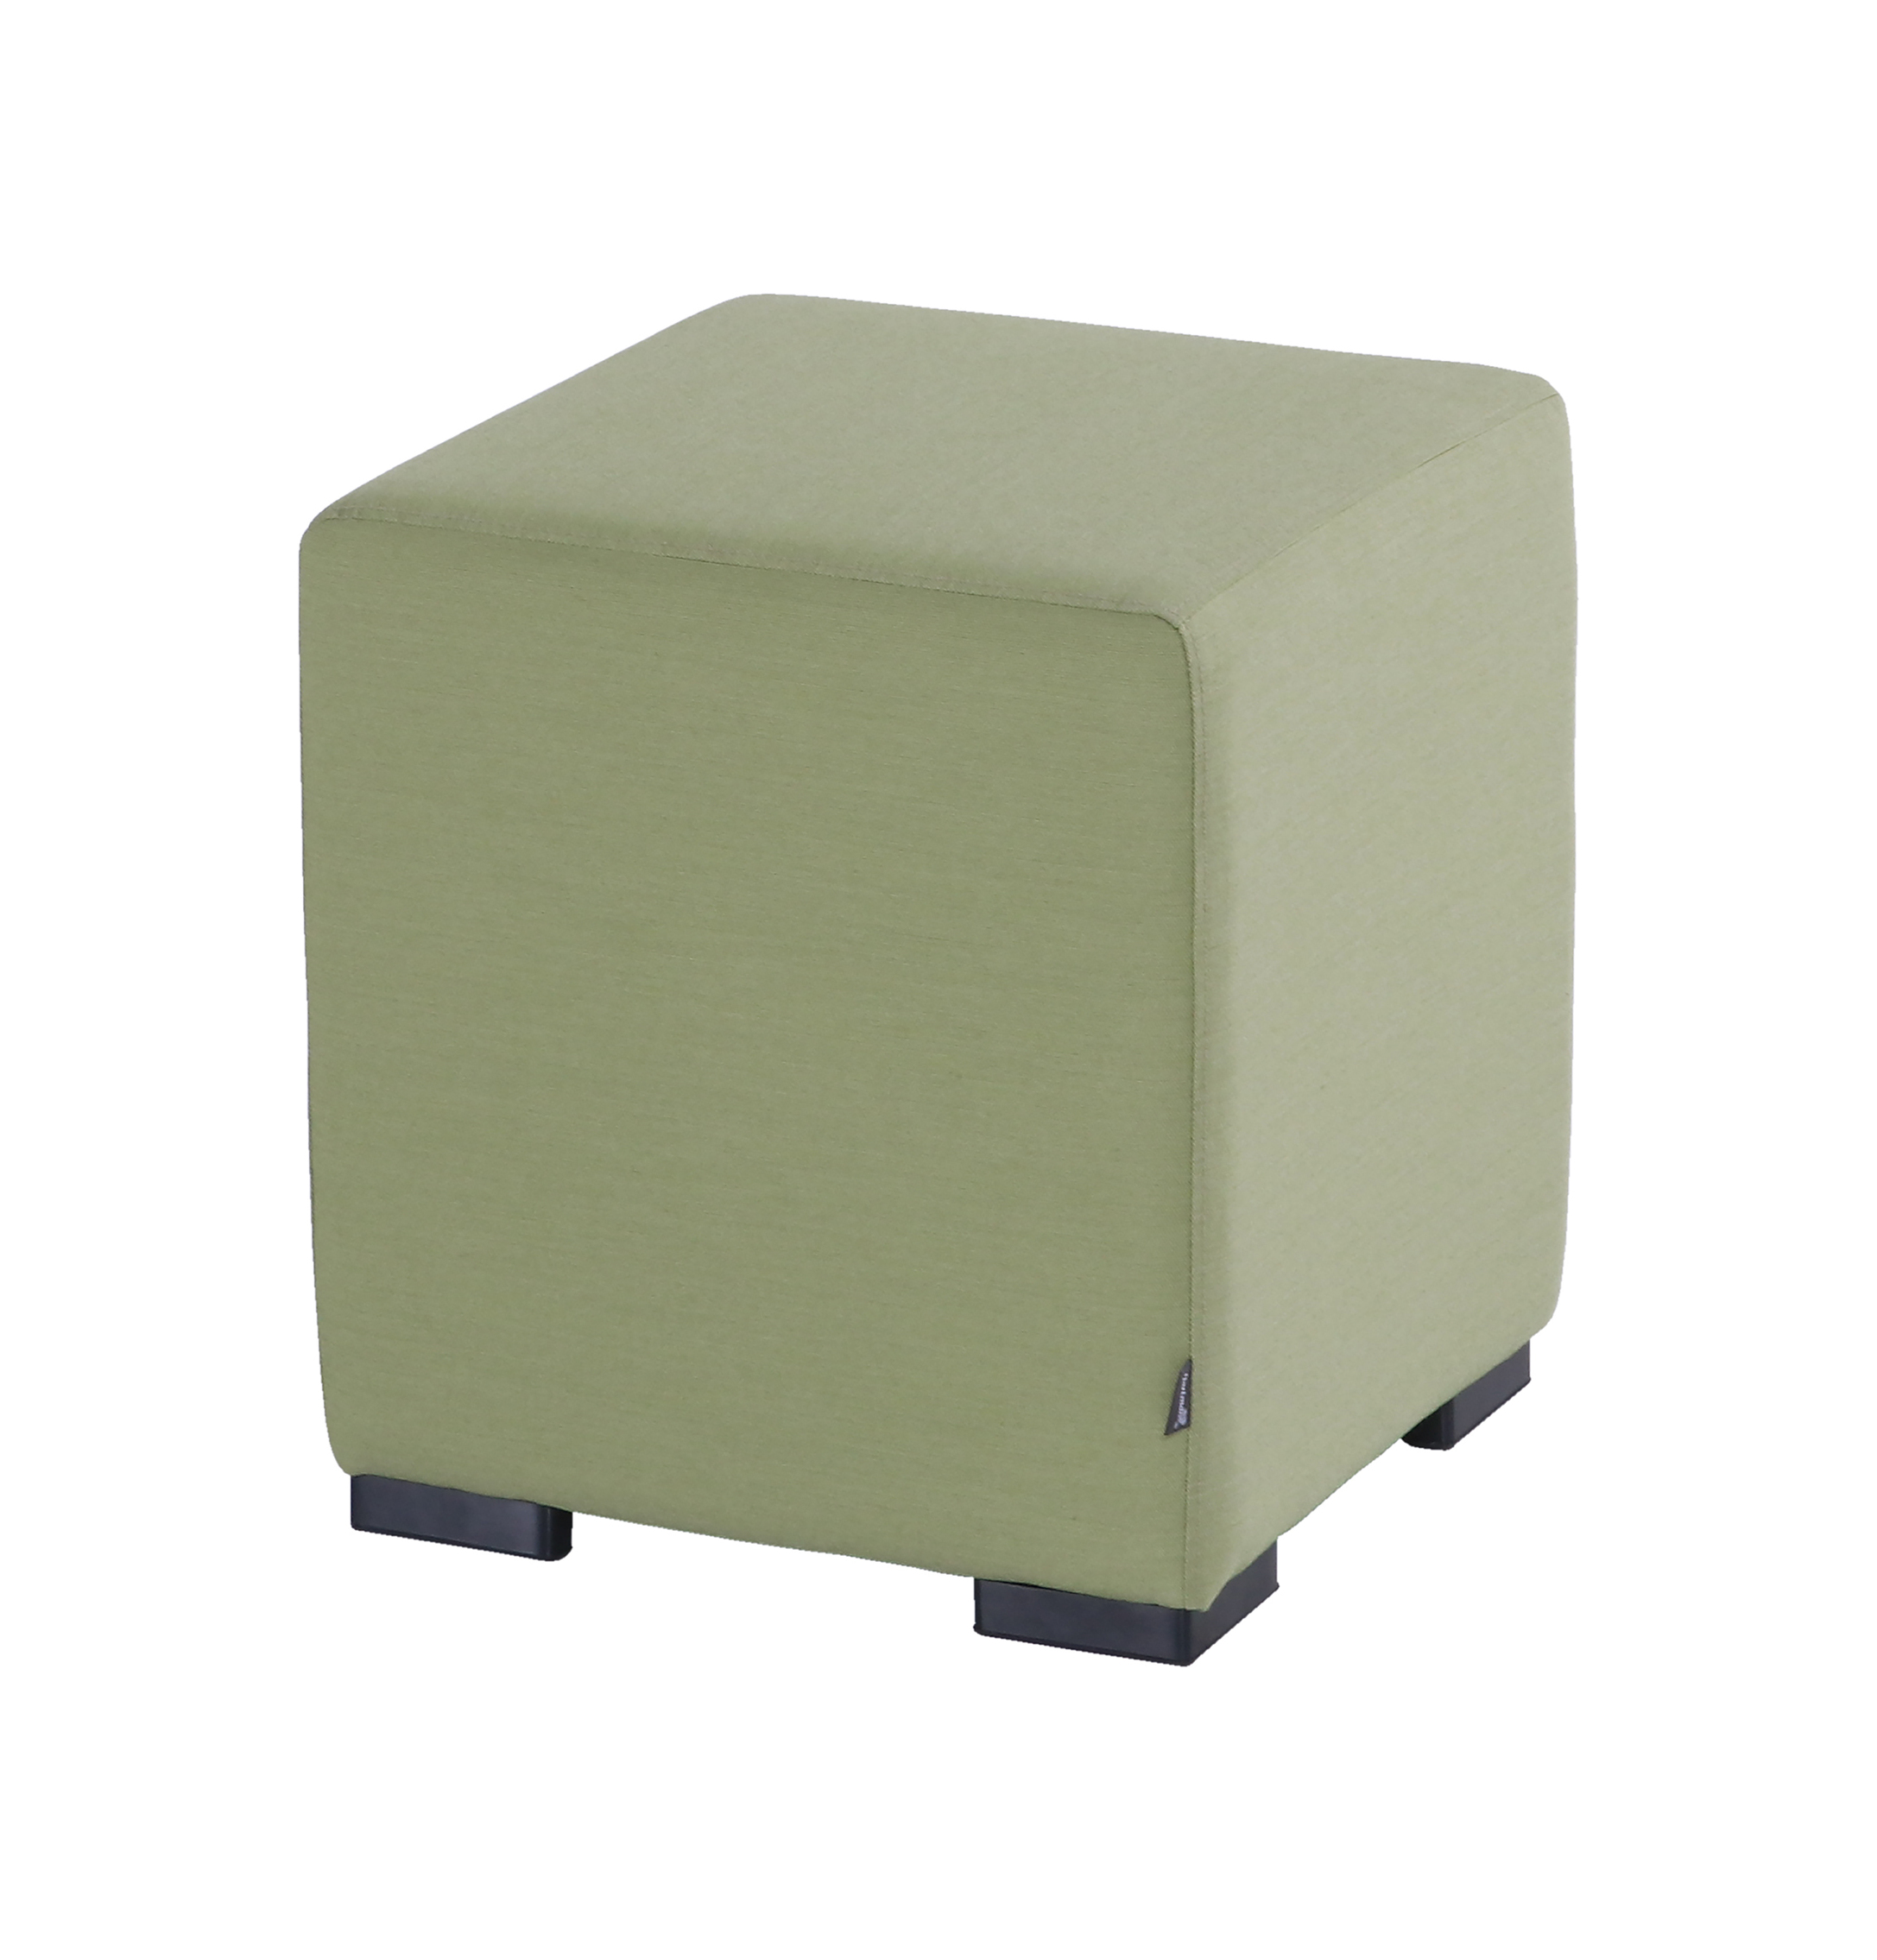 Hartman Outdoor Hocker 'Alex', kleur Groen